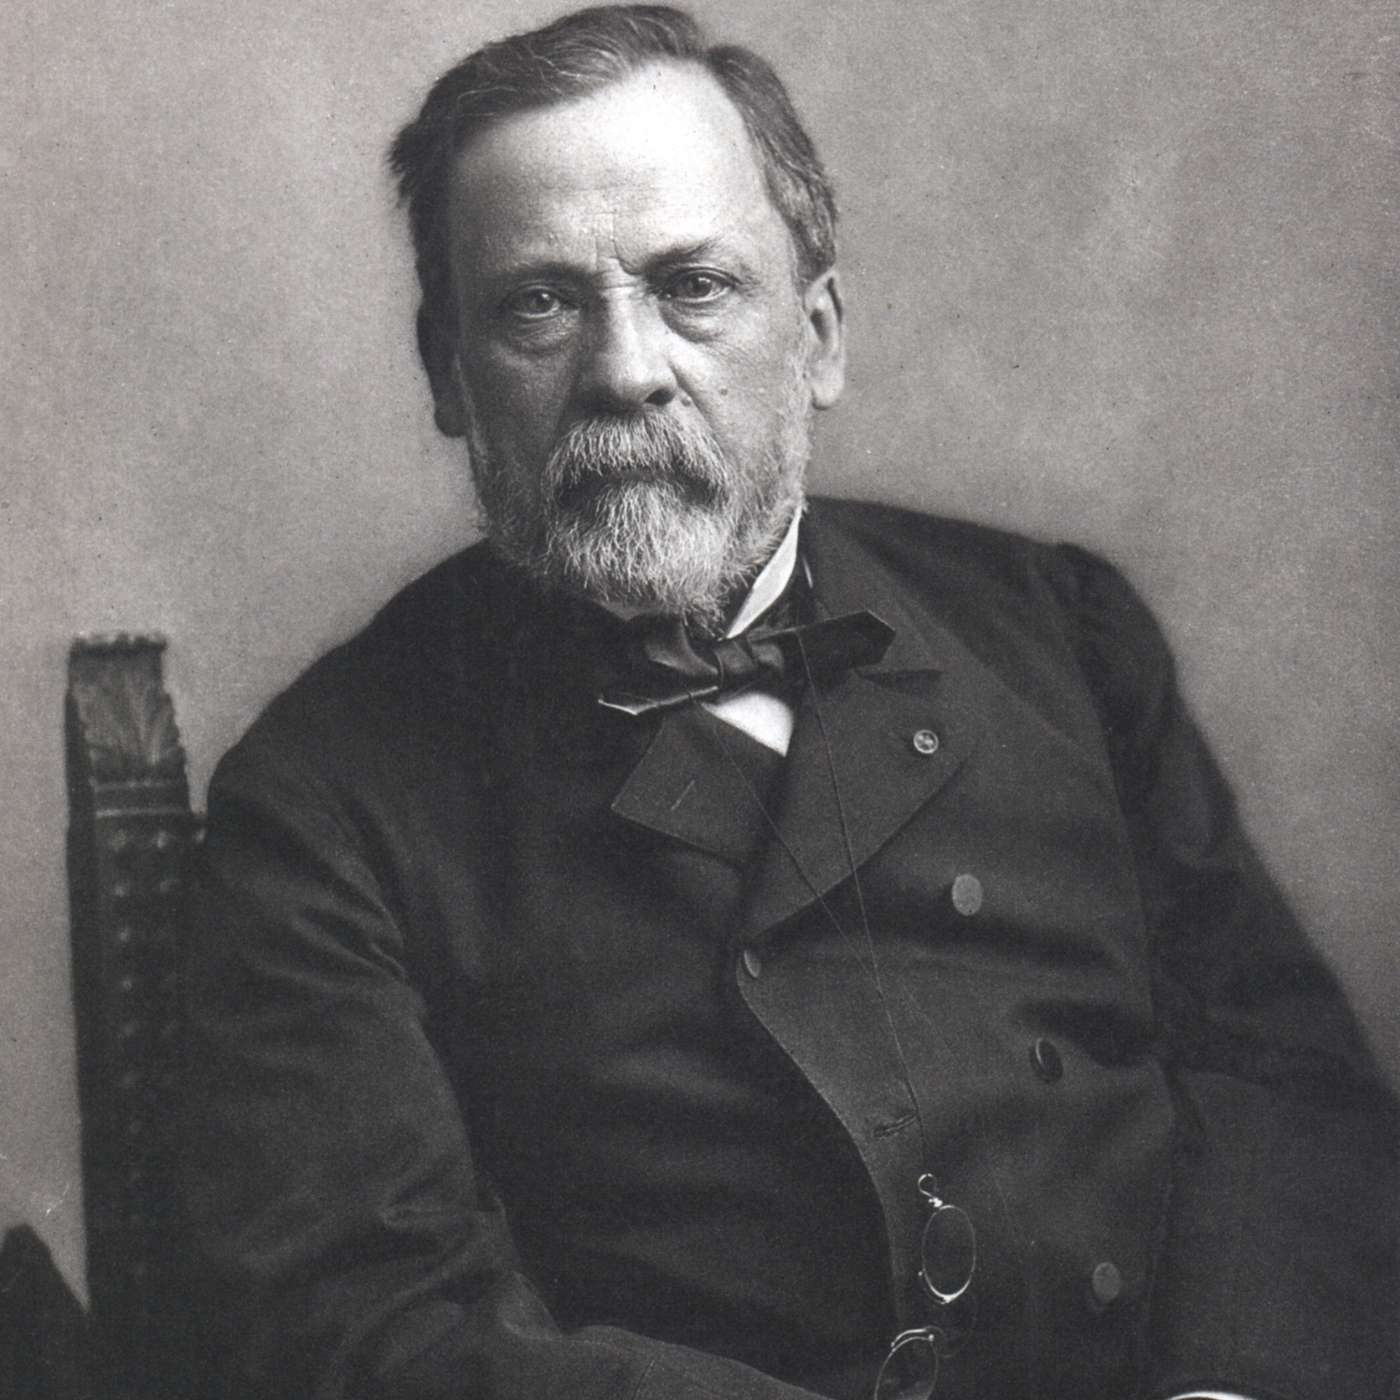 The Life and Times of Louis Pasteur, Episode 319